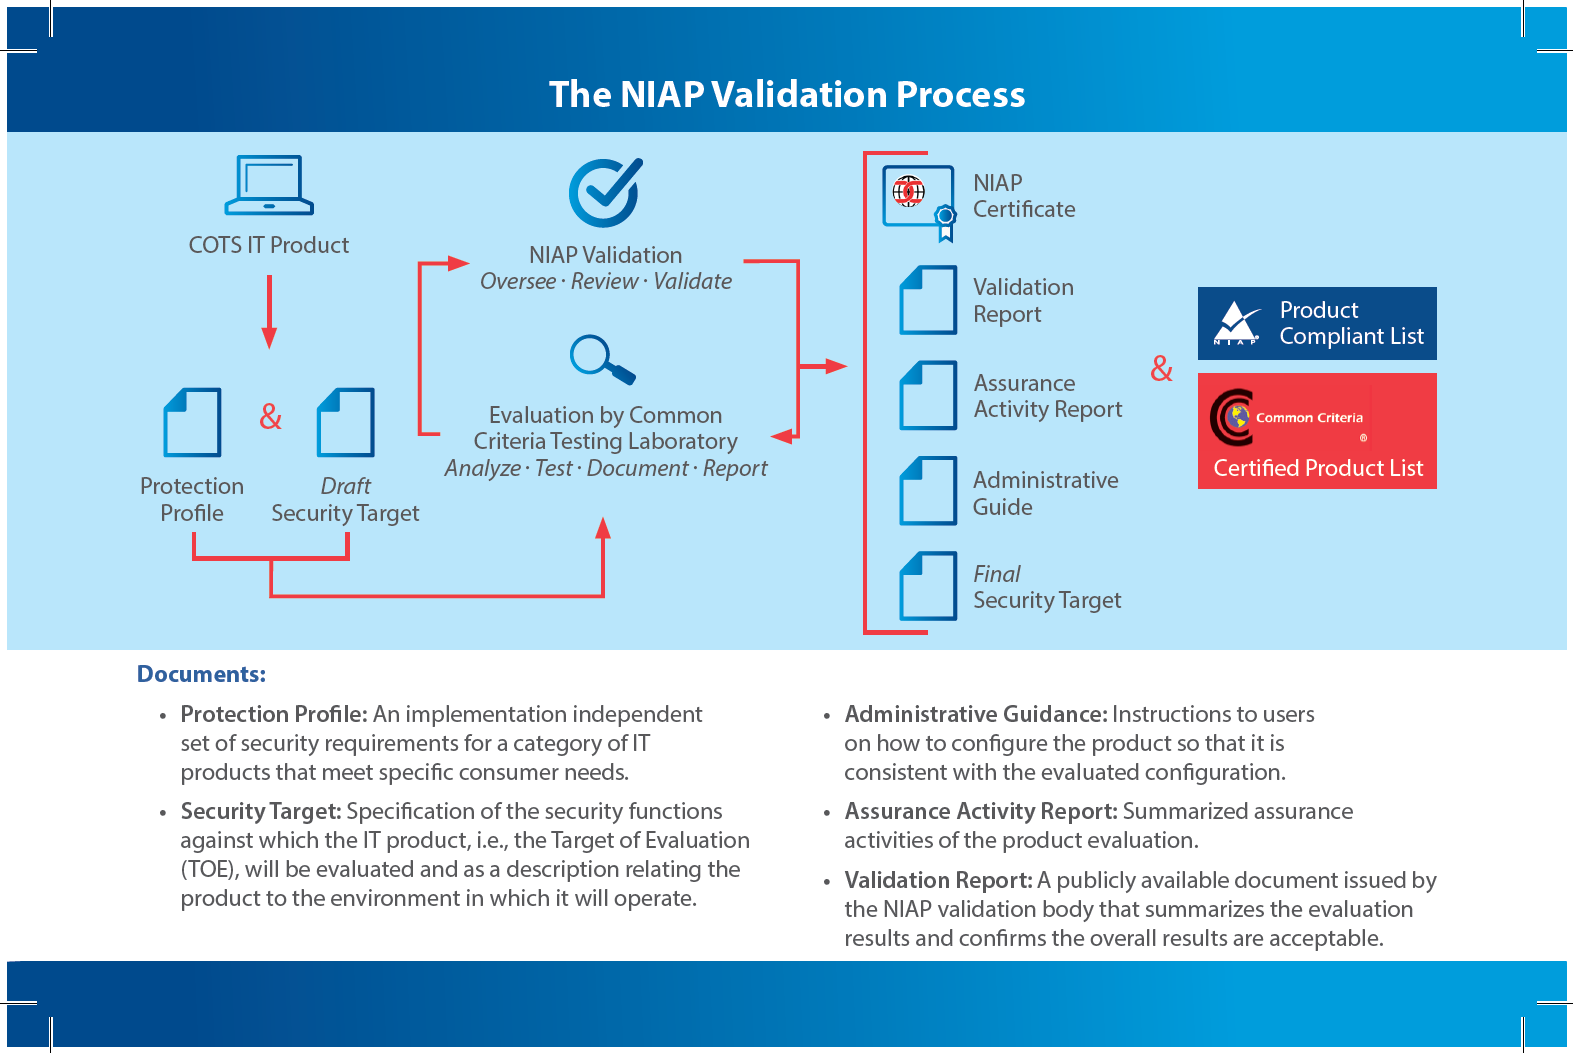 The NIAP Validation Process